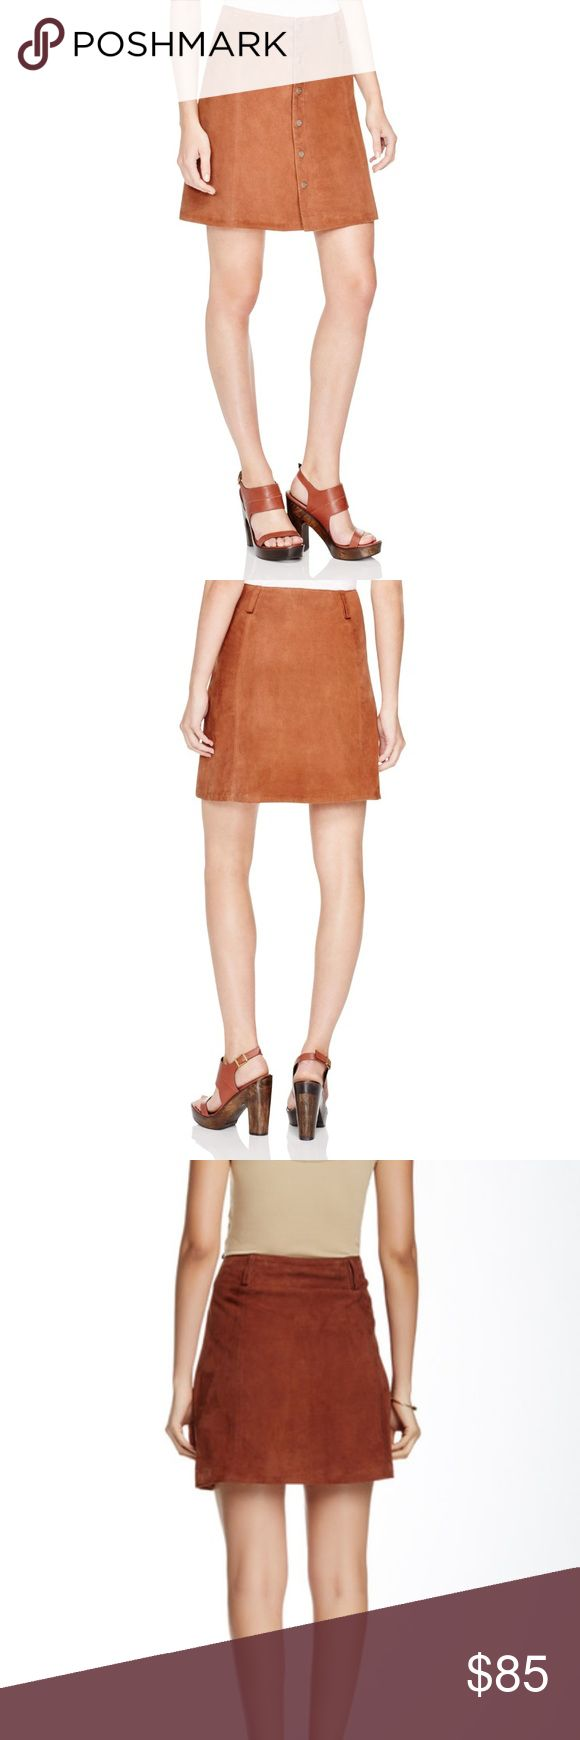 """Sanctuary Anita Suede A Line Skirt •Belt loops, A-line silhouette •Front snap closures, lined •Leather; lining: polyester •Professional leather clean Details:- Full length front snap button closure - Suede construction - Approx. 17"""" length - ImportedFiber Content:Shell: 100% leather Lining: 100% polyesterCare:Professional leather clean onlyAdditional Info:Fit: this style fits true to size.  Model's stats for sizing: - Waist: 23"""" Model is wearing size S. marks in suede due to nature of…"""